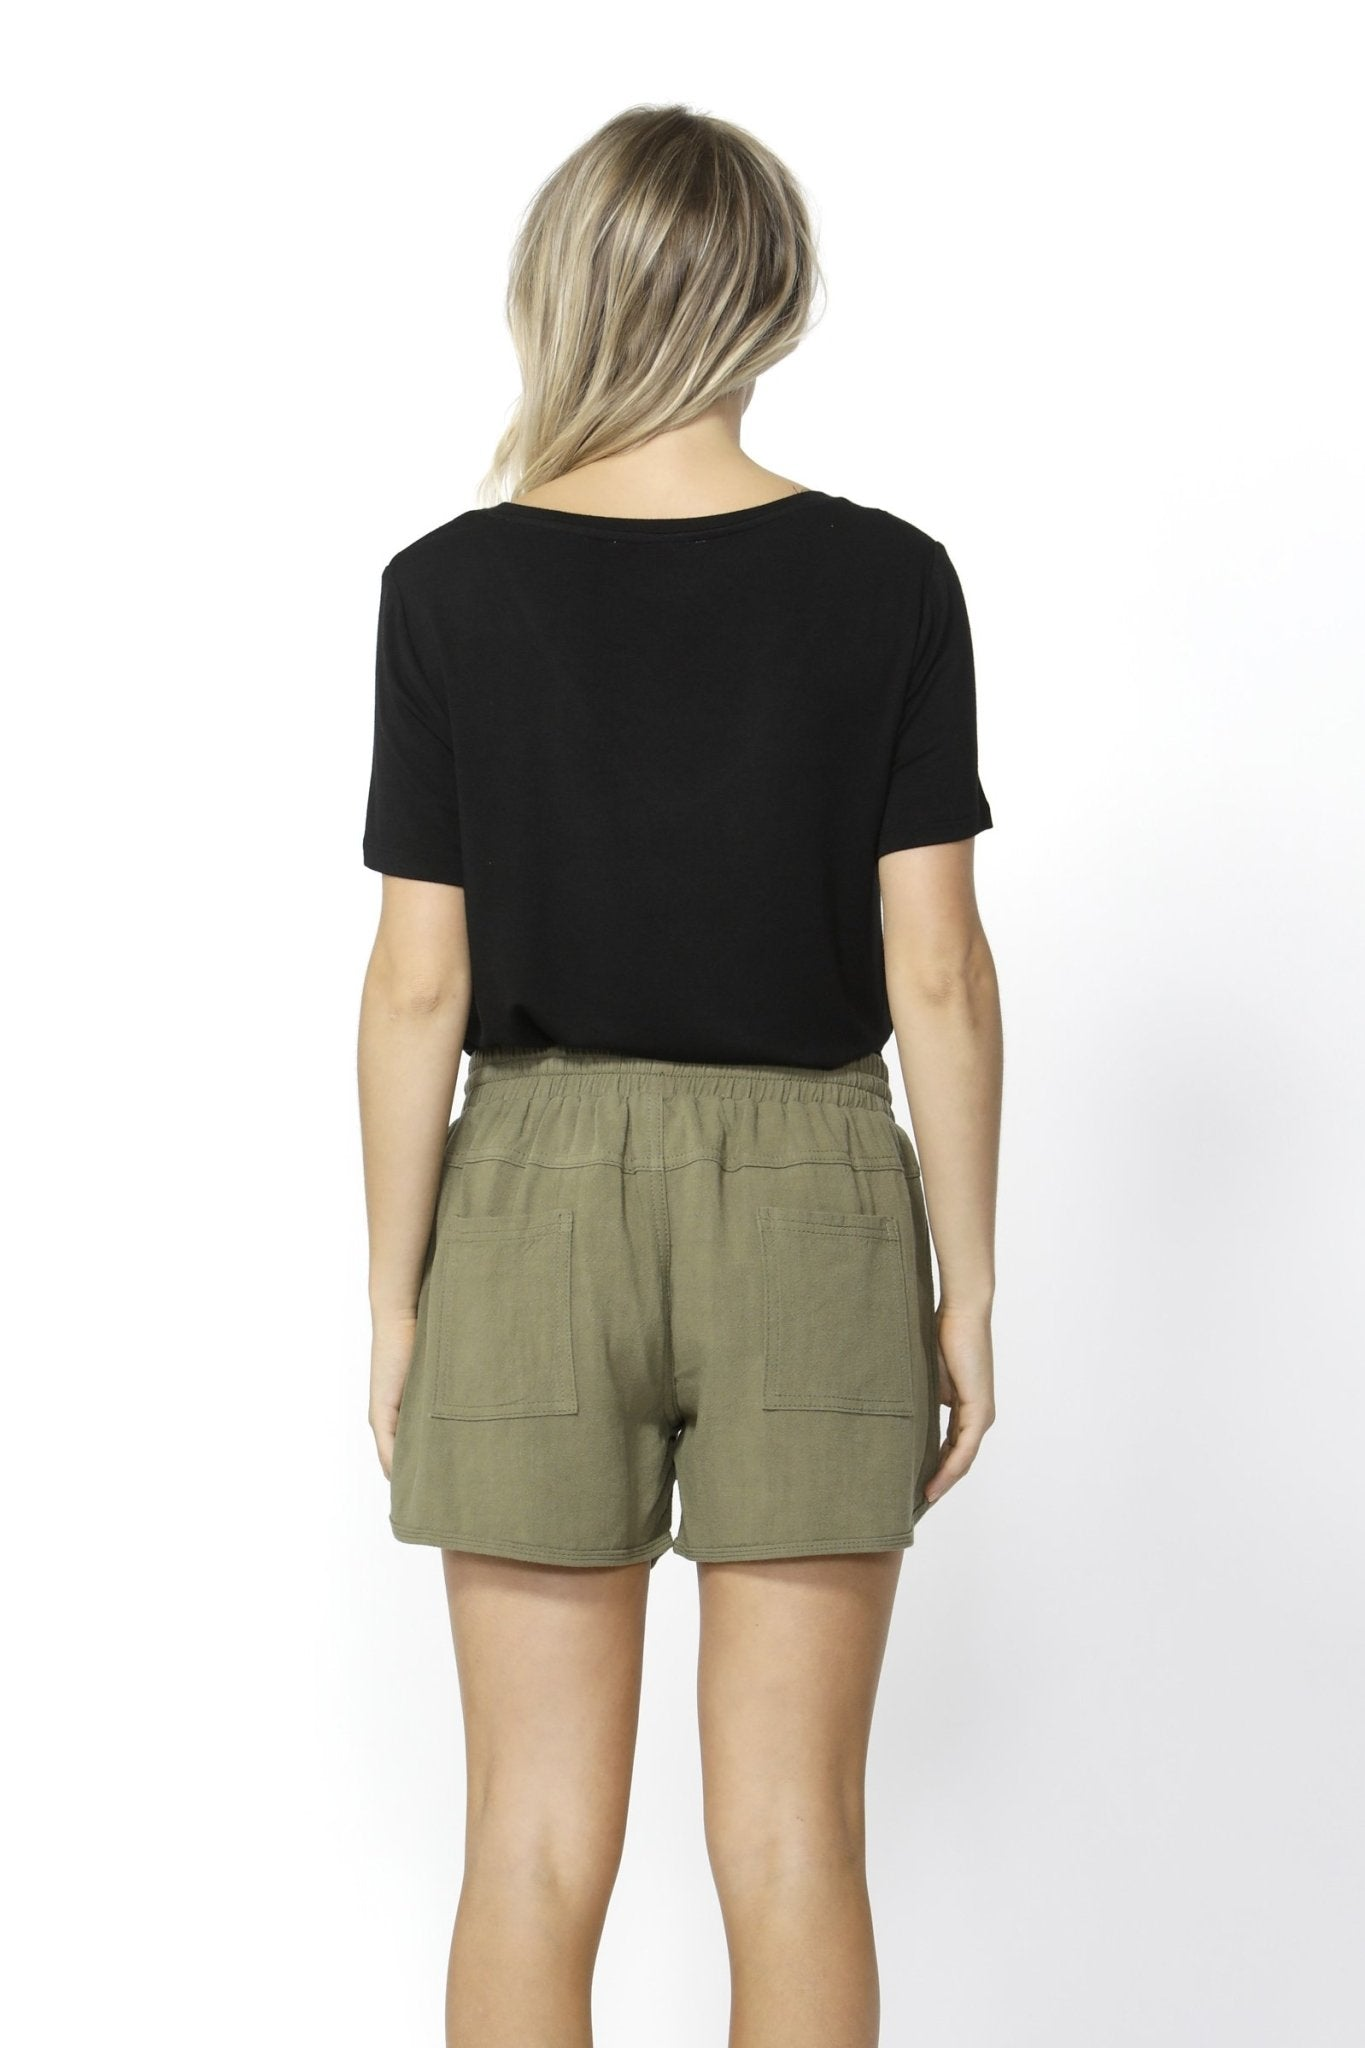 Betty Basics Charlie Linen Short in Khaki - Hey Sara